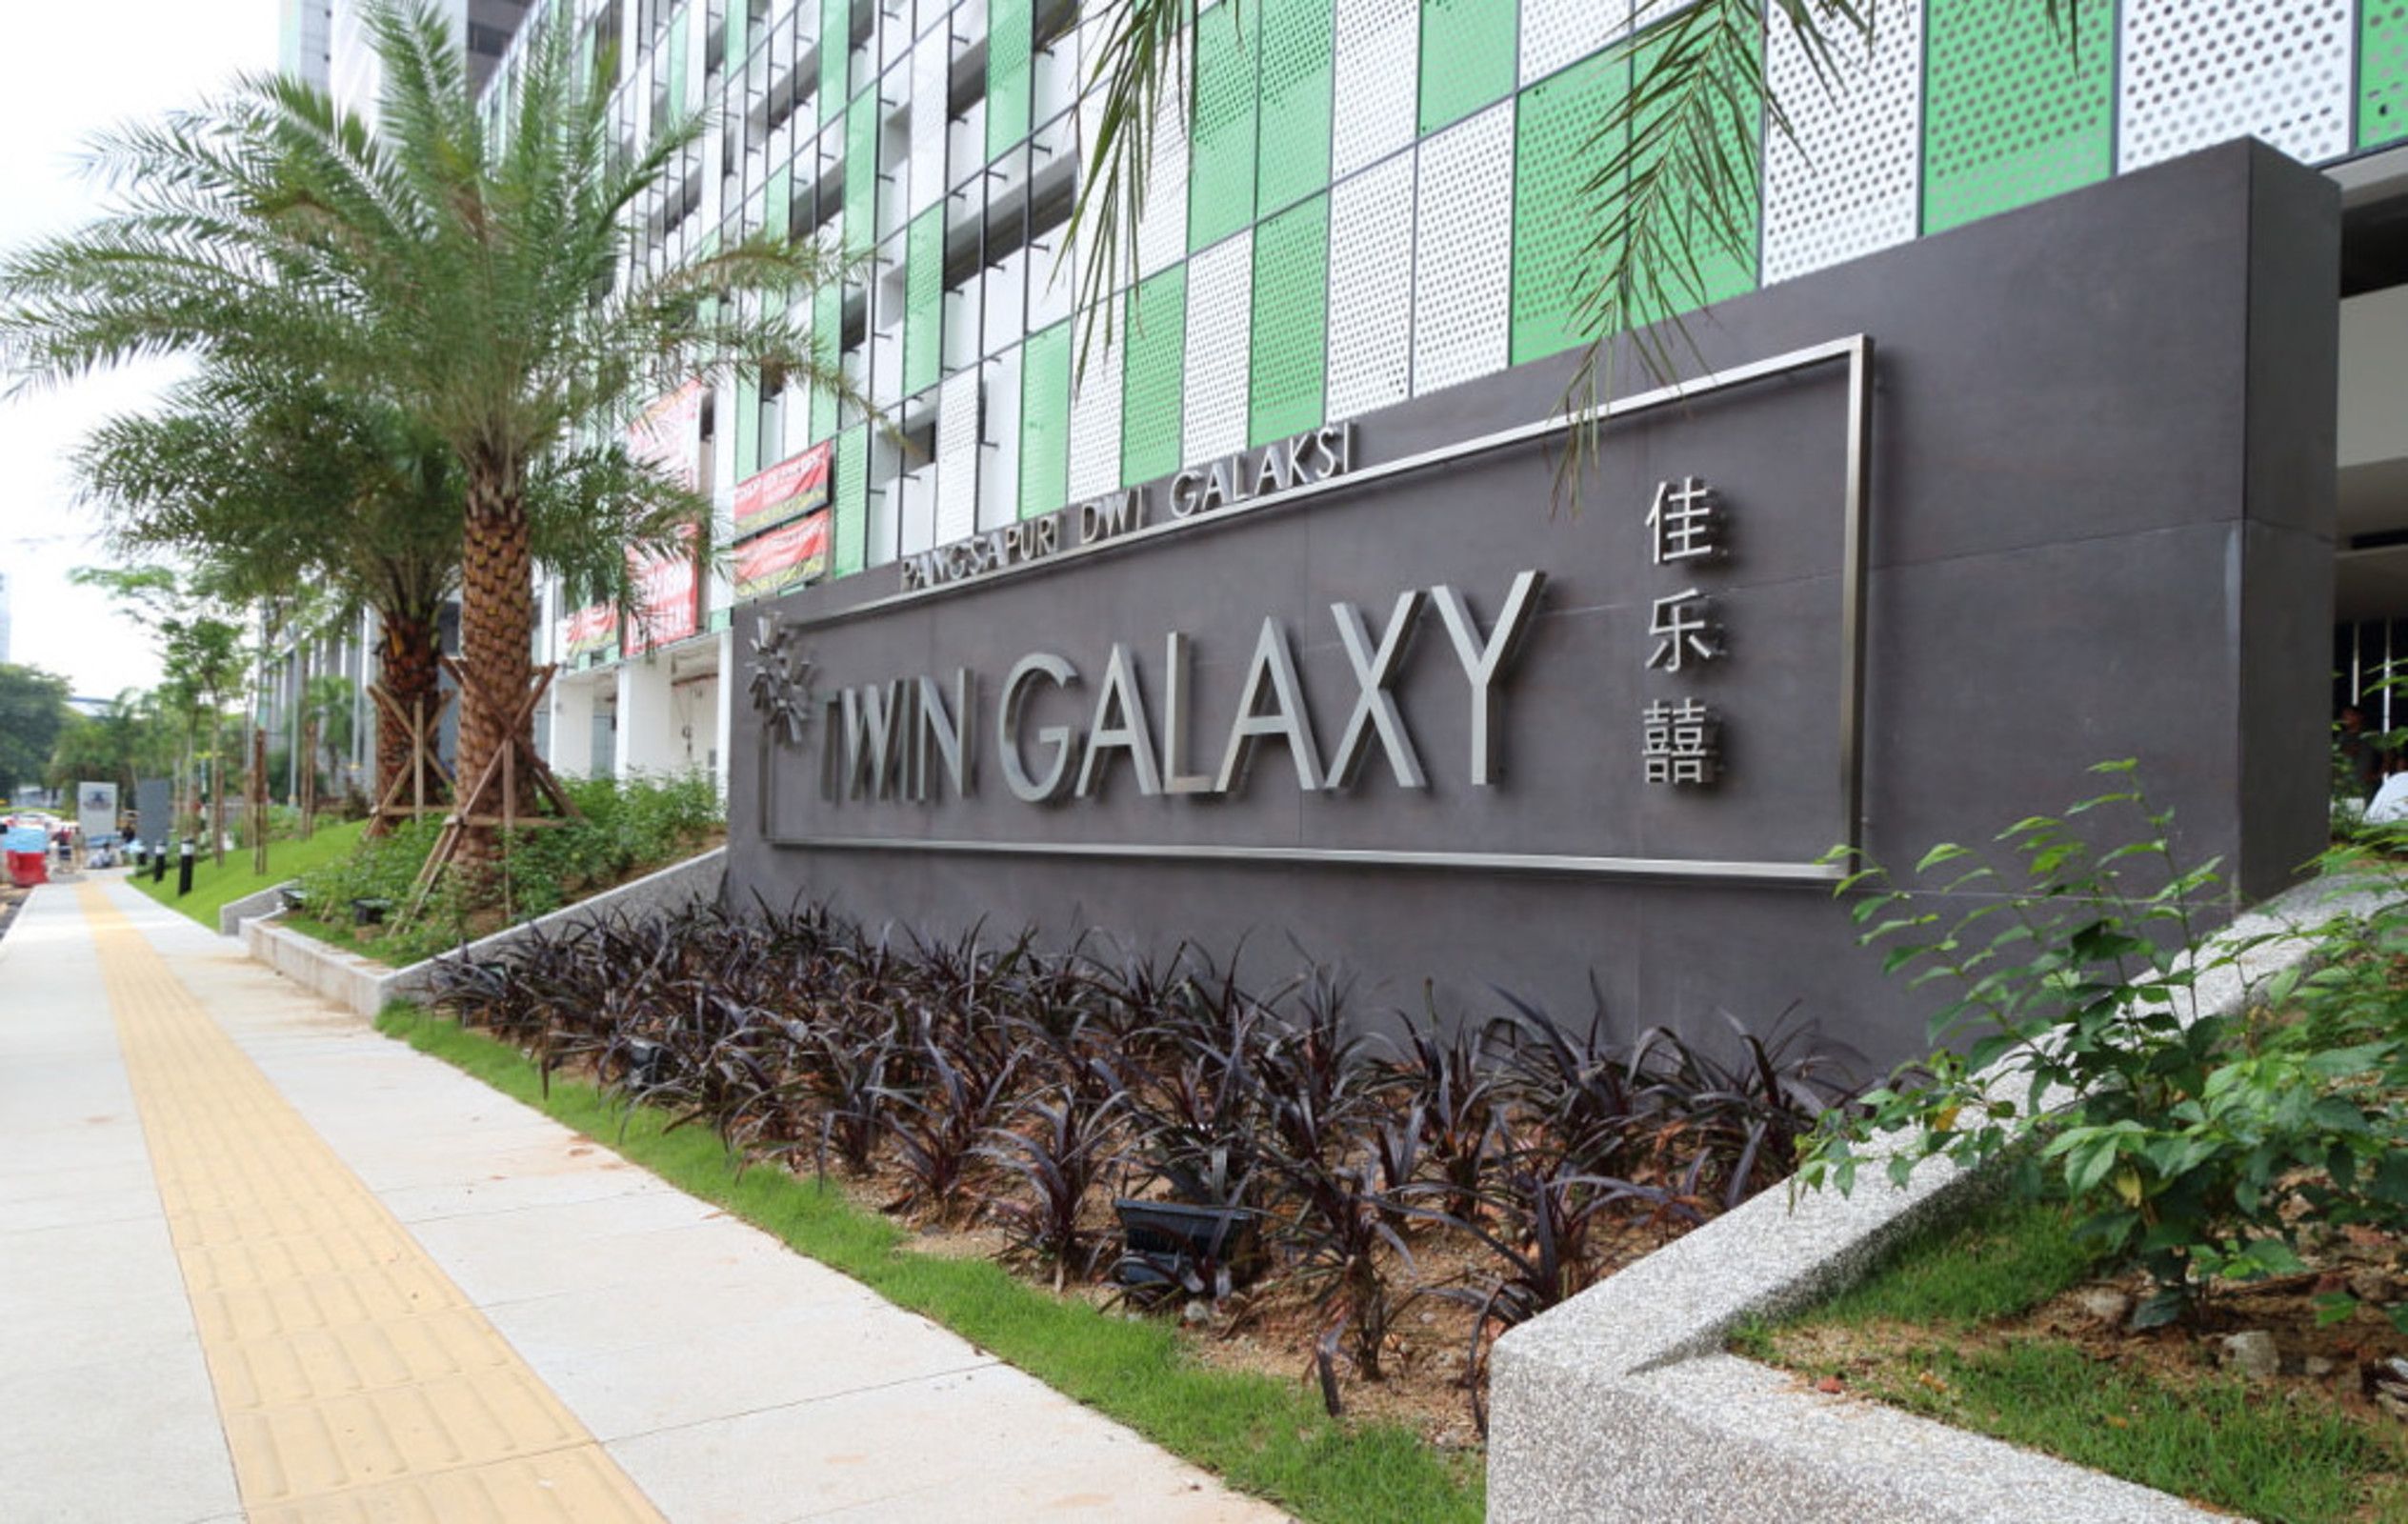 Johor bahru house for sale twin galaxy 5